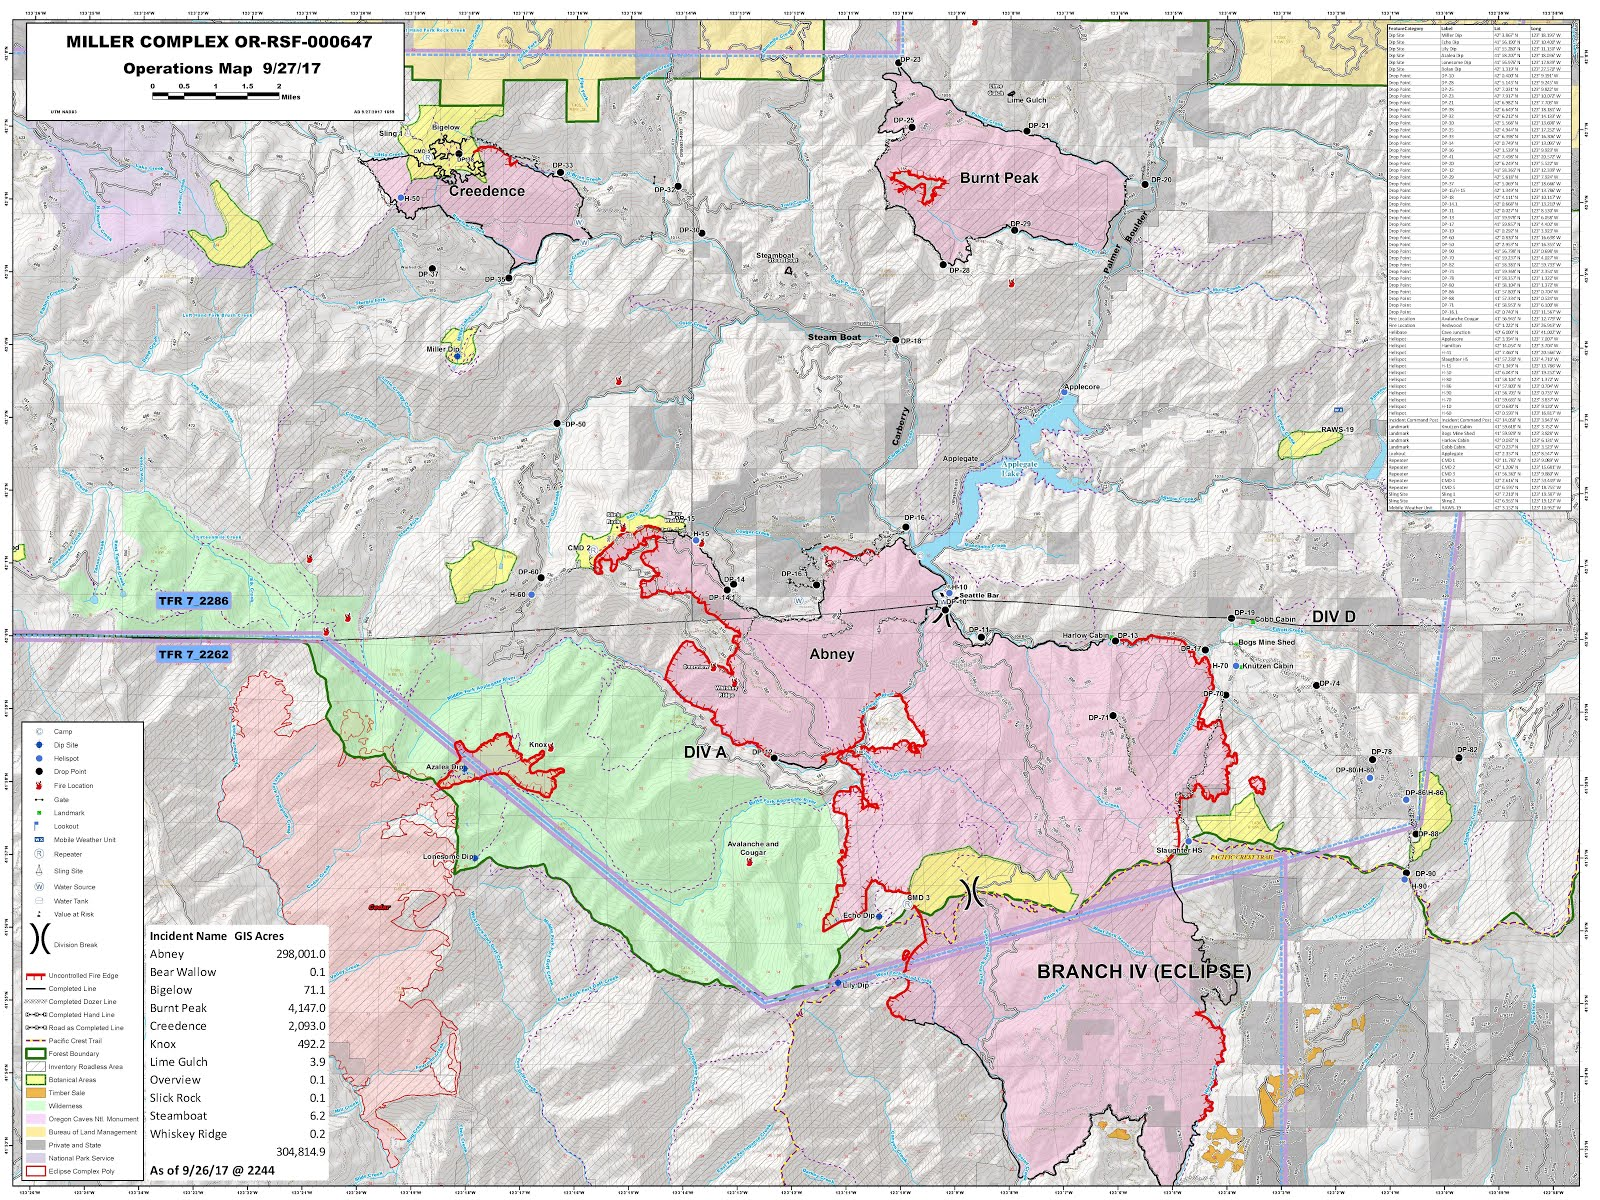 for all wildfires on the rogue river siskiyou nf joint information center blog http swojic blogspot com